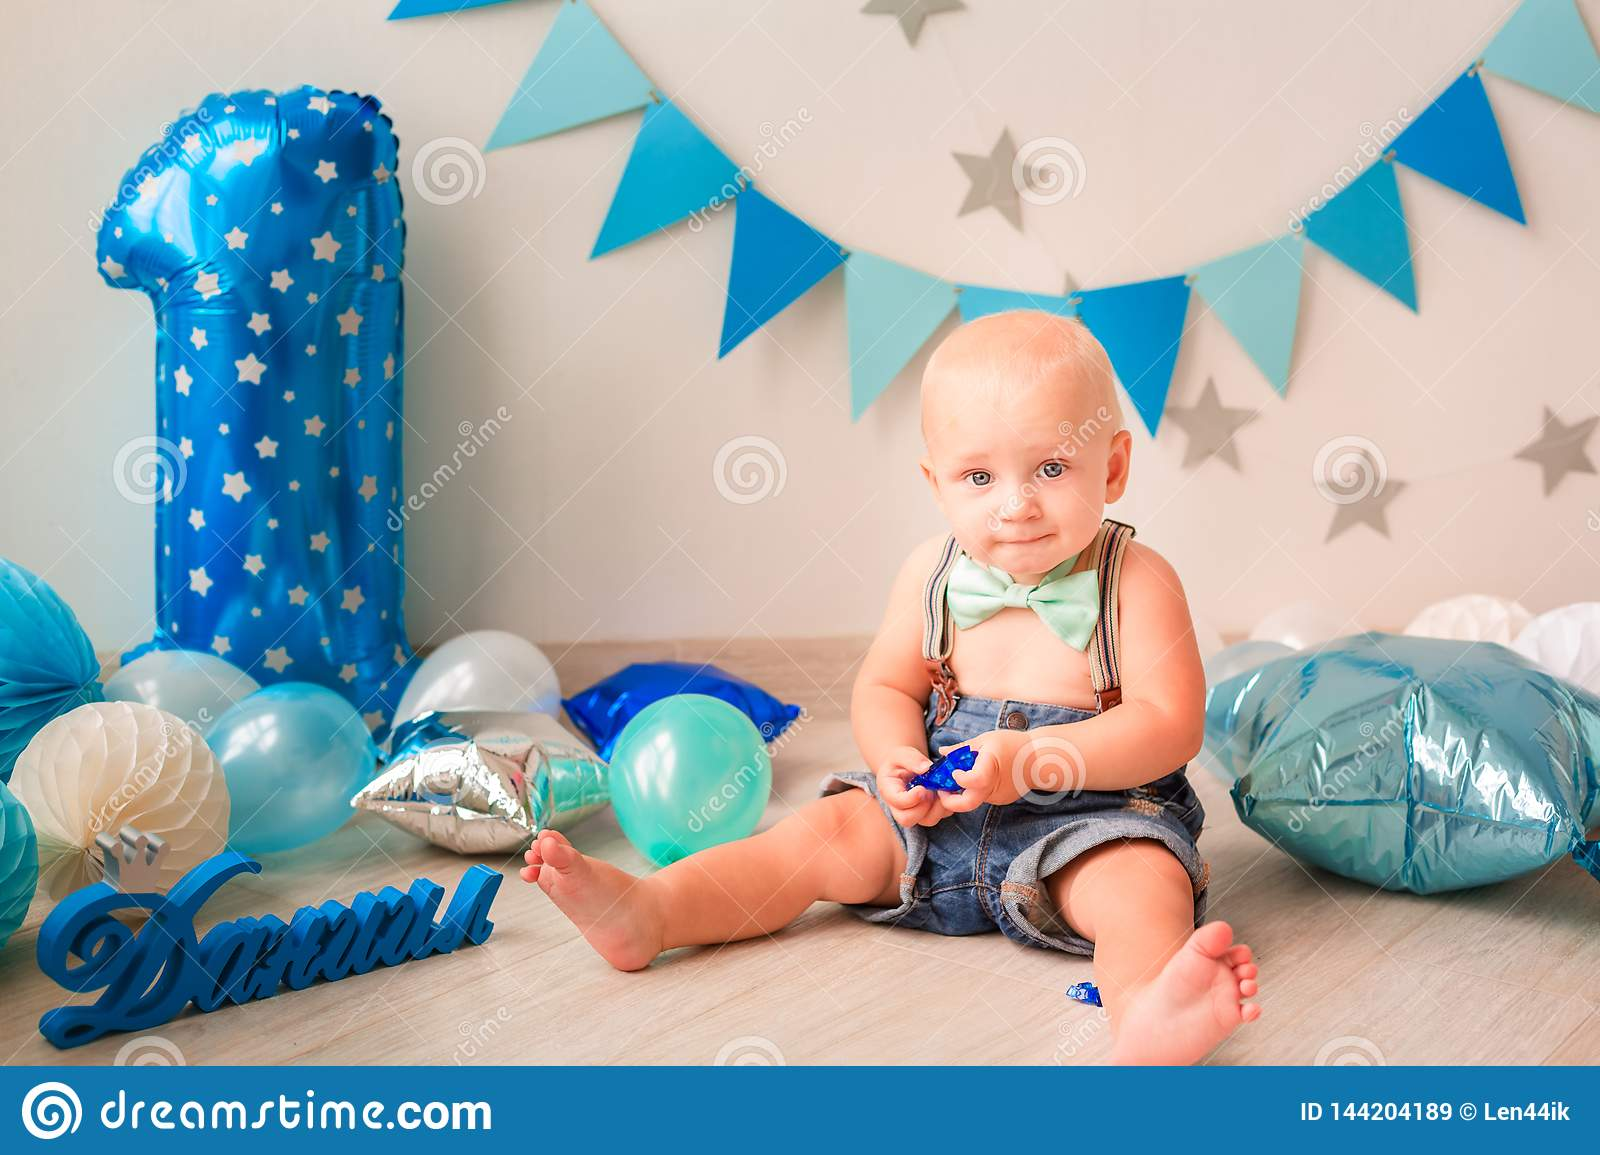 Awesome Adorable Baby Boy Celebrating His First Birthday Smash Cake Stock Funny Birthday Cards Online Unhofree Goldxyz